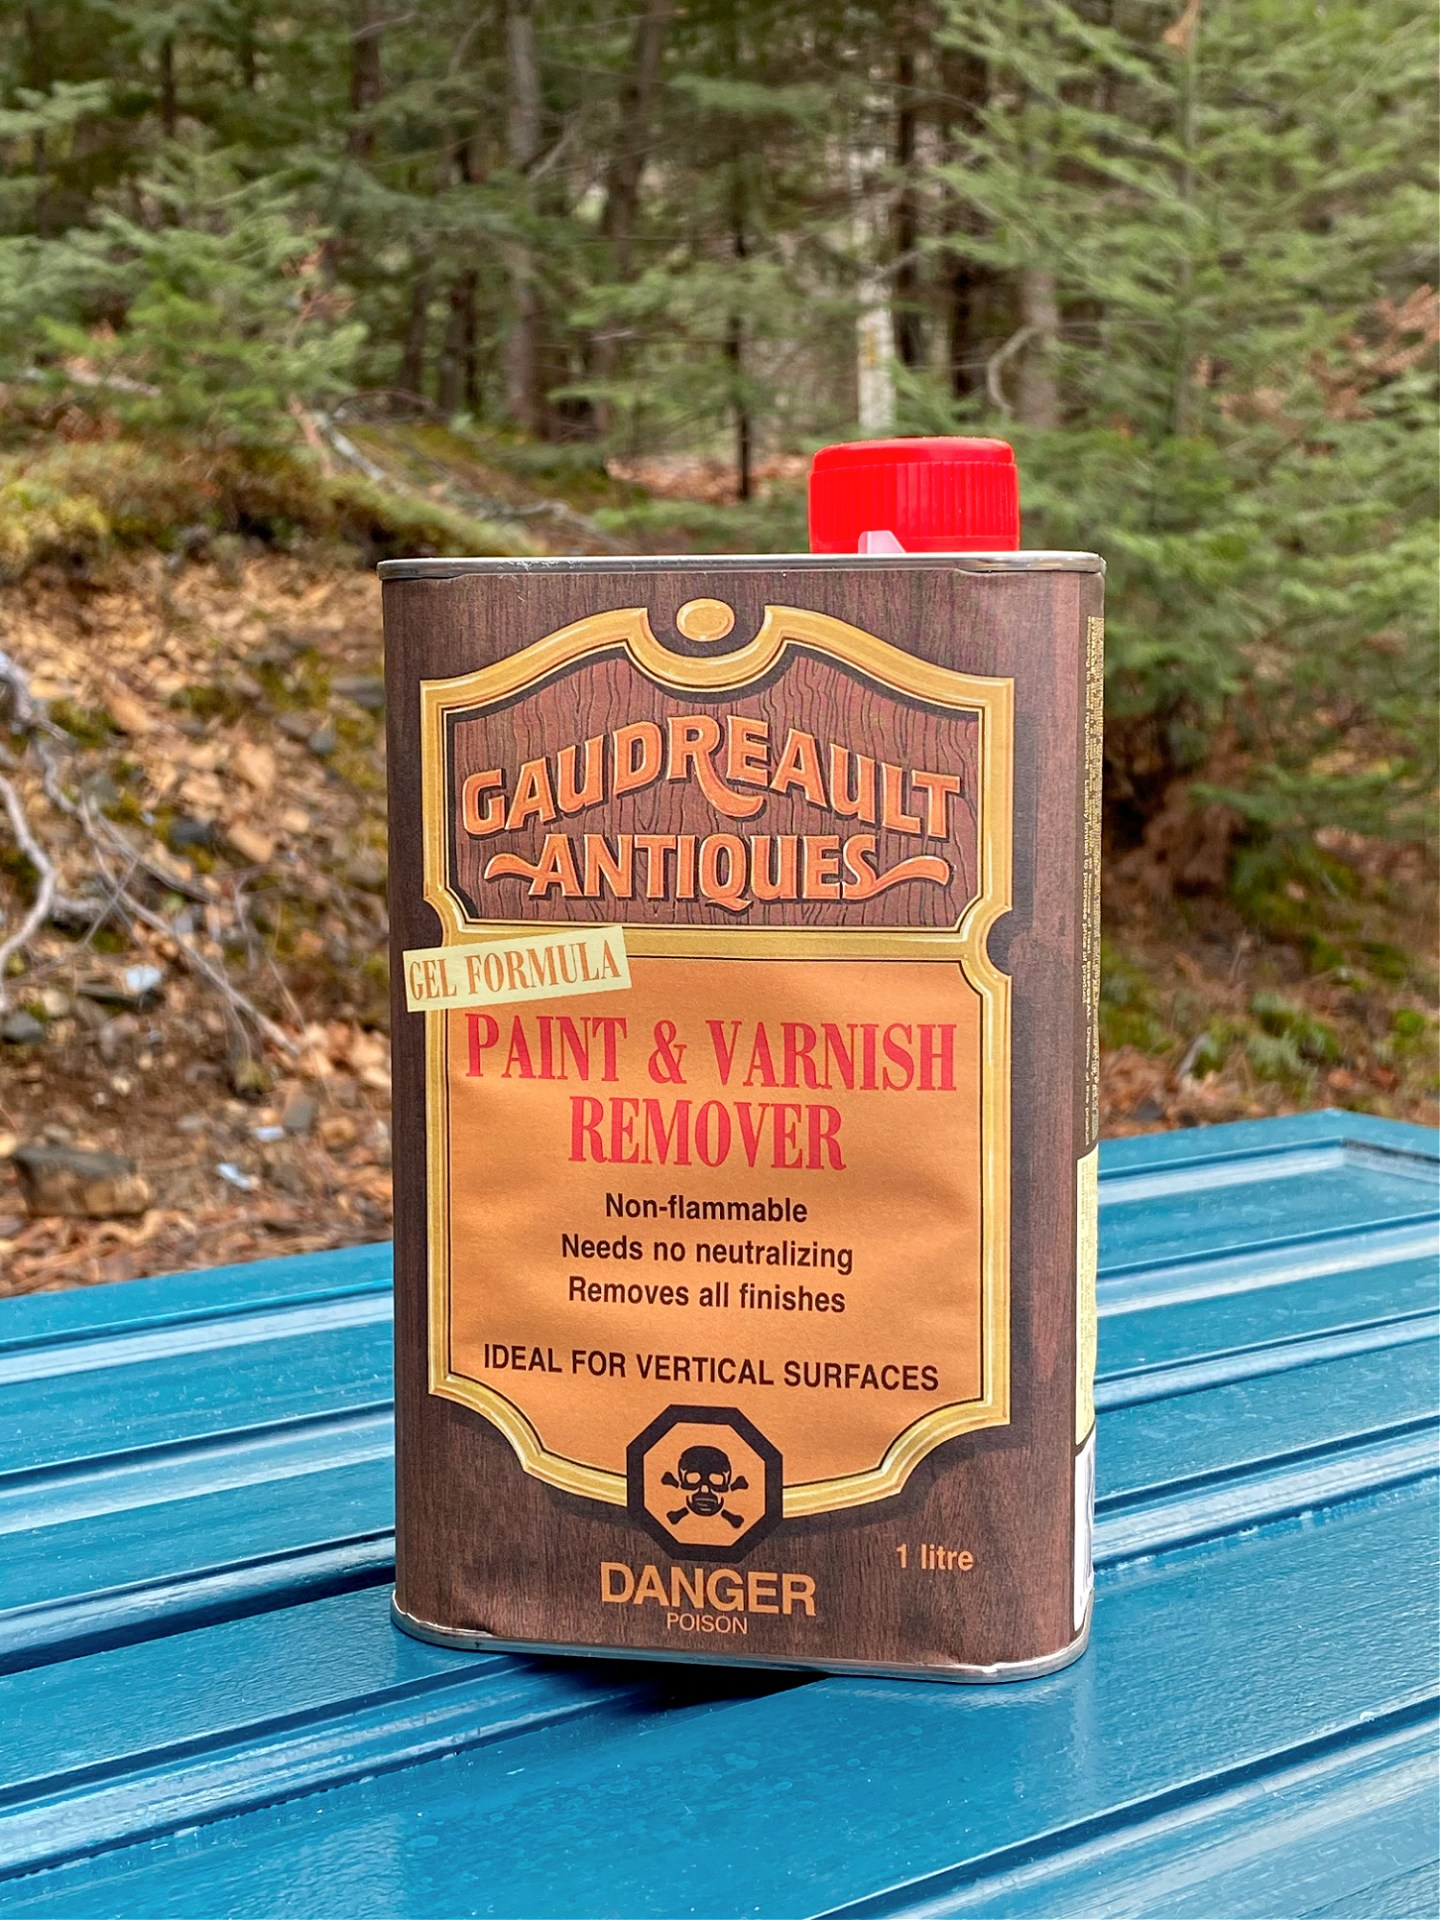 The BEST Paint and Varnish Remover